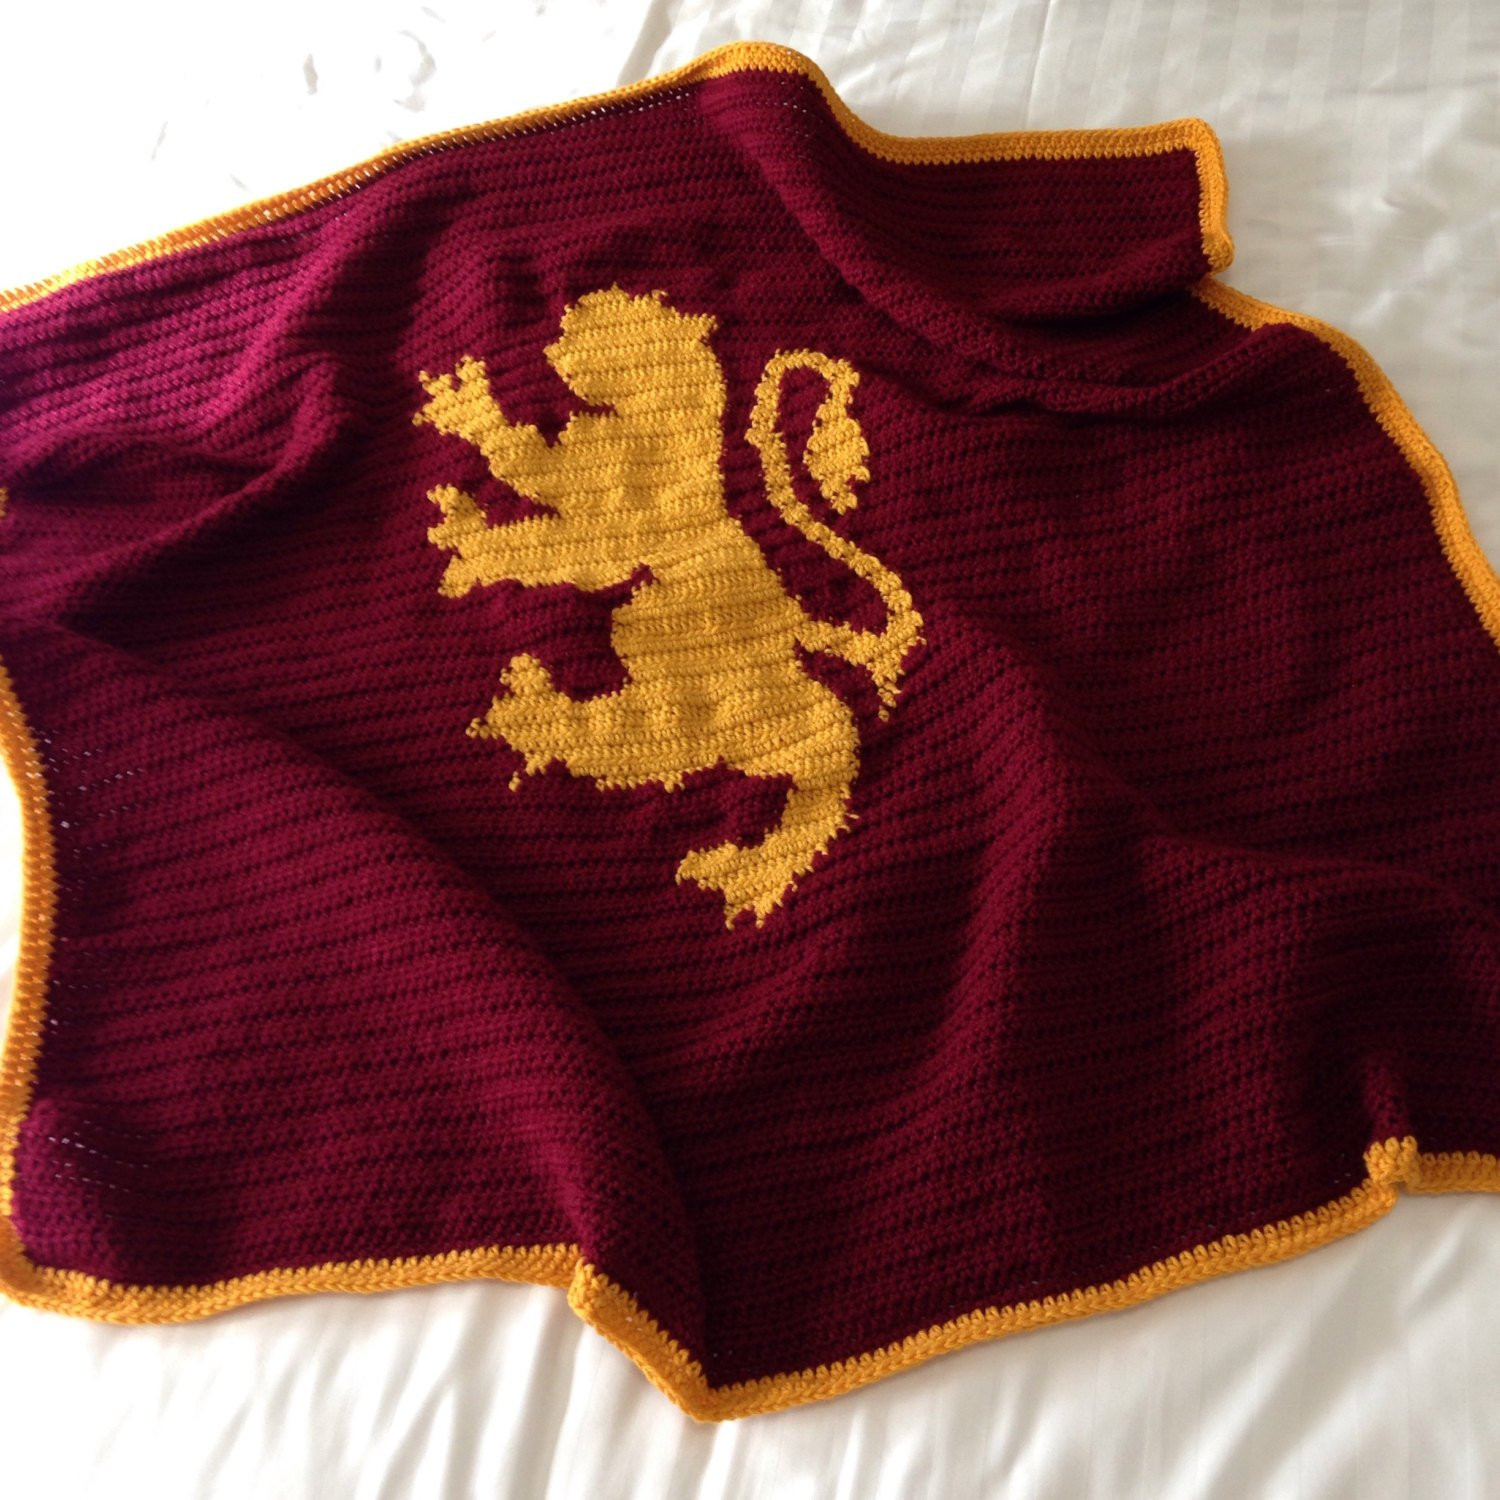 Awesome Harry Potter Crochet Throw Blanket Gryffindor by Harry Potter Crochet Blanket Of Luxury 42 Models Harry Potter Crochet Blanket